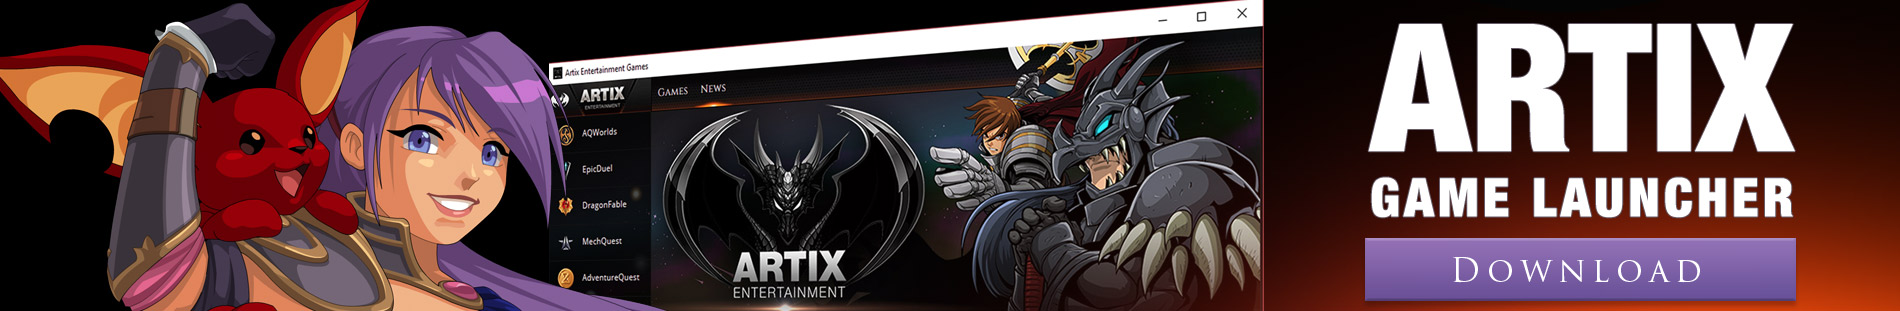 Artix Game Launcher